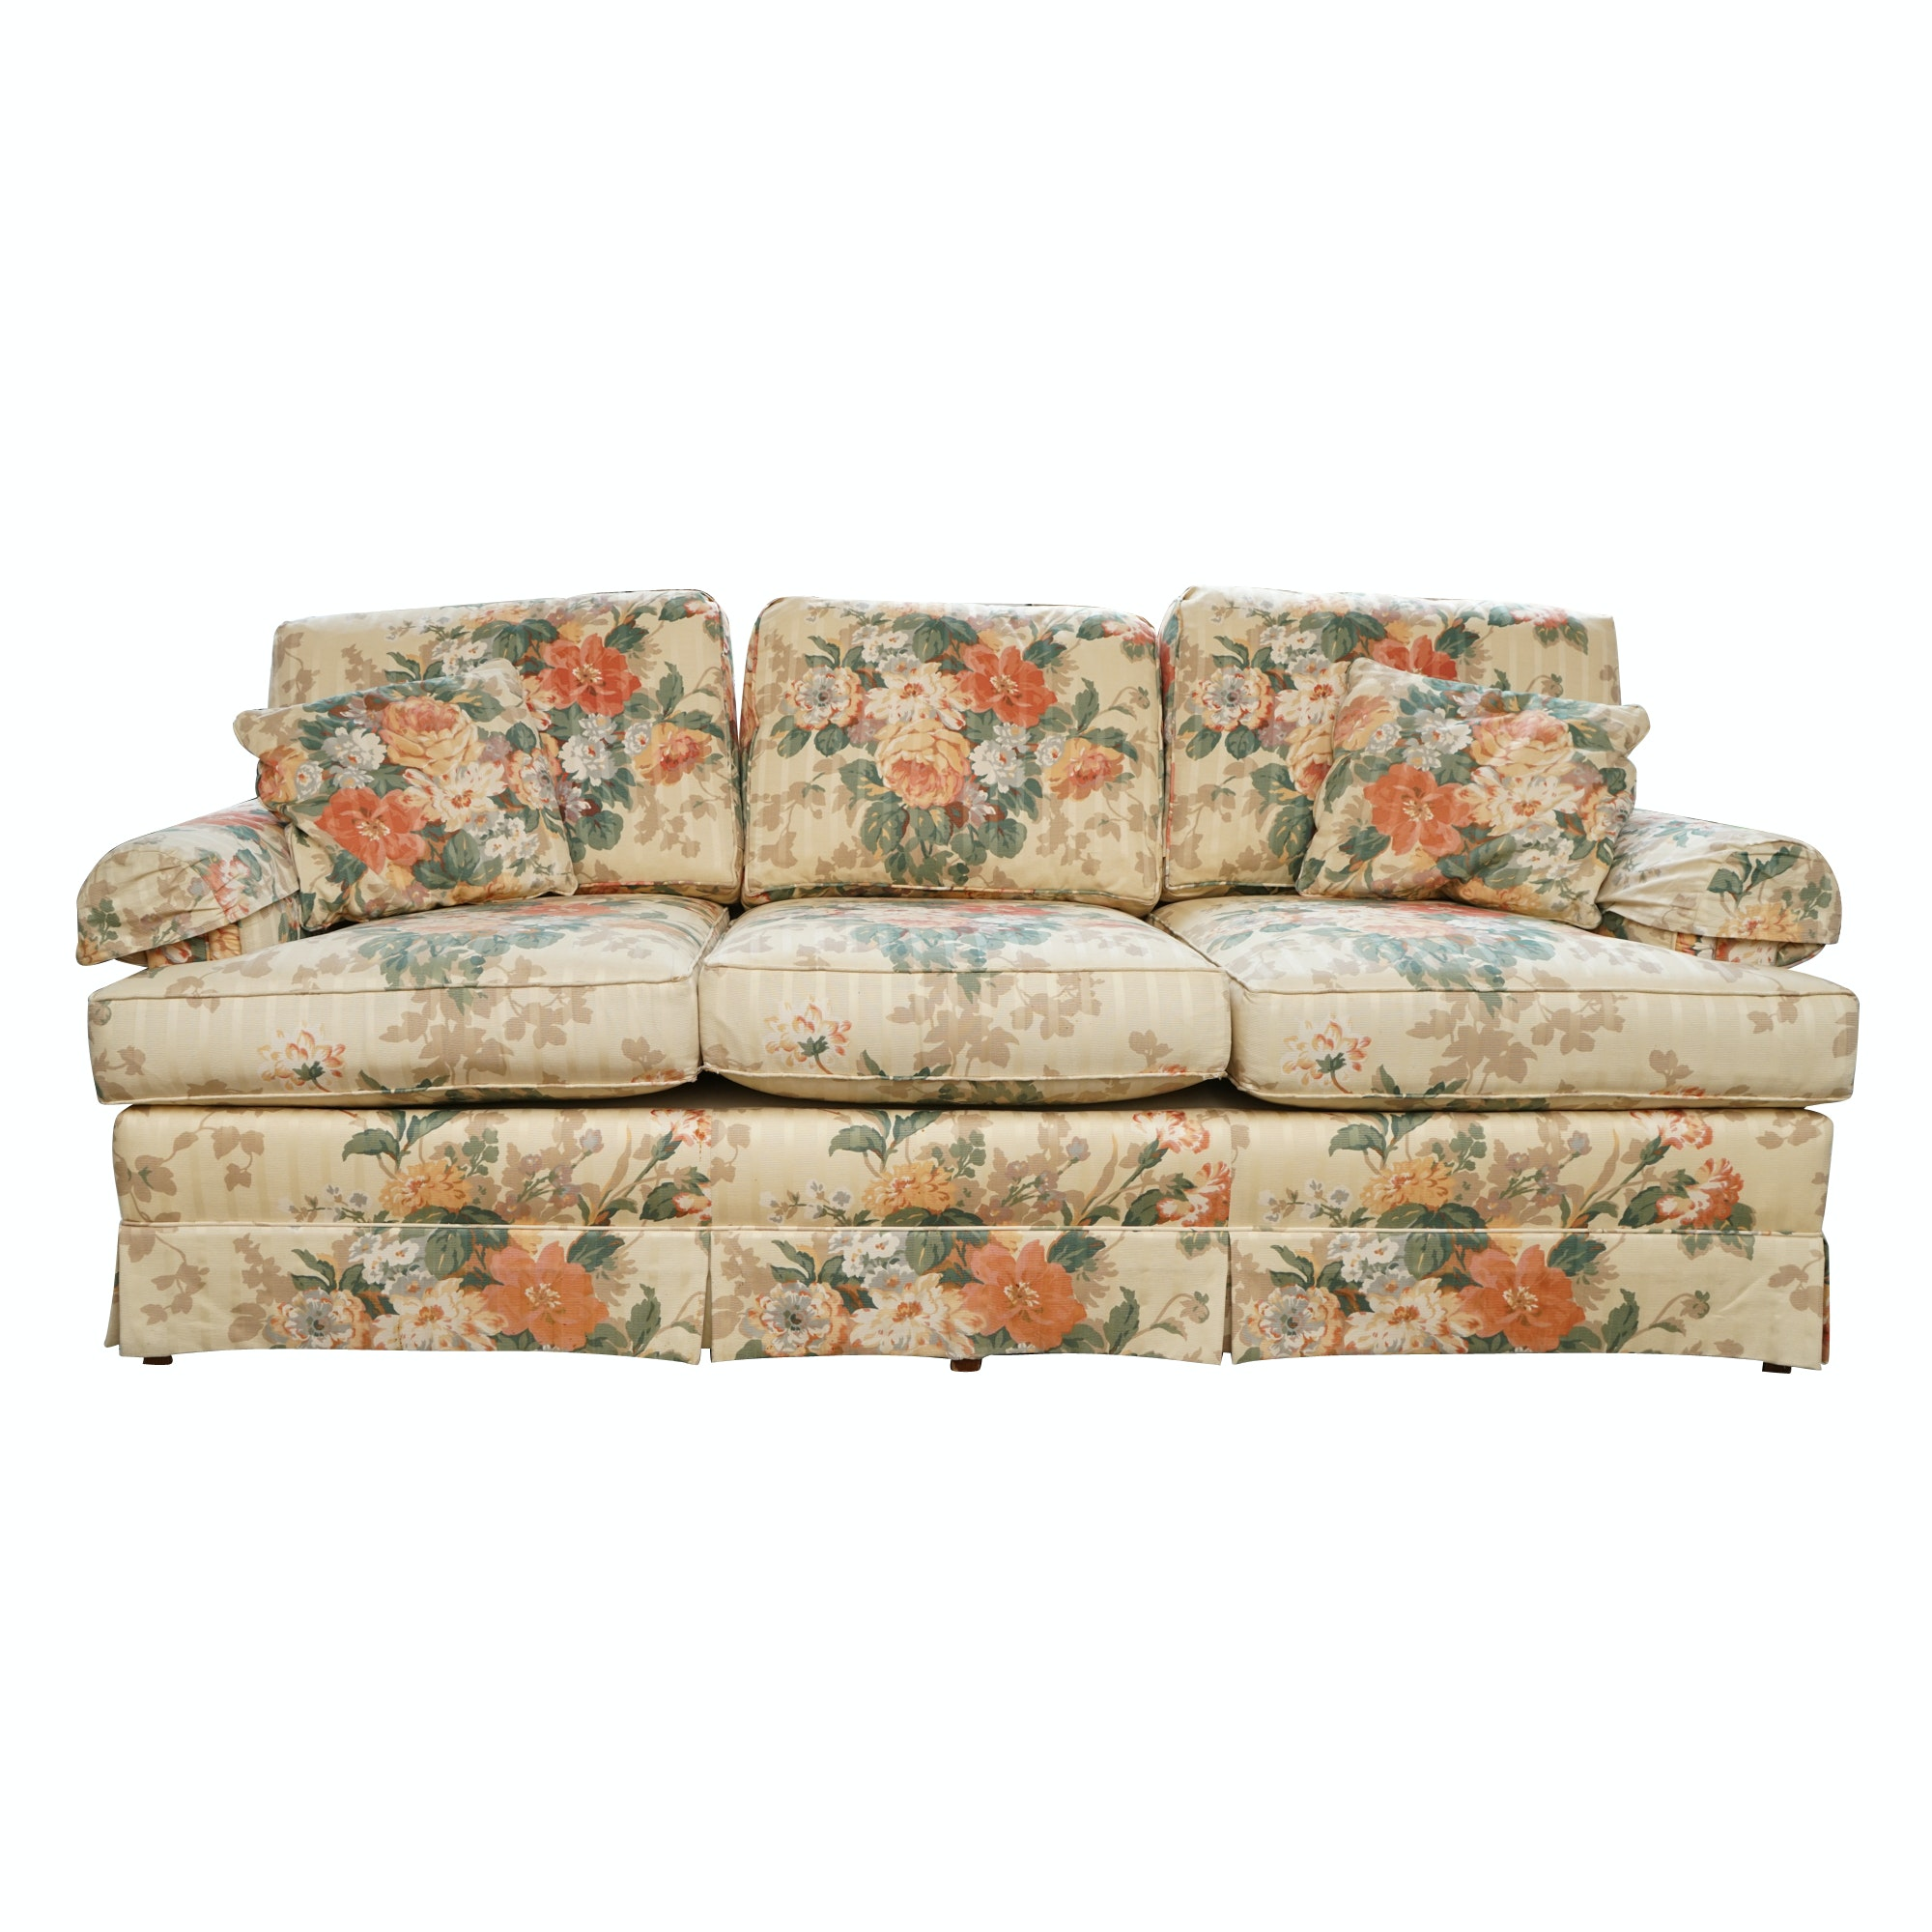 Floral Upholstered Sofa by Grand Rapids Furniture Company